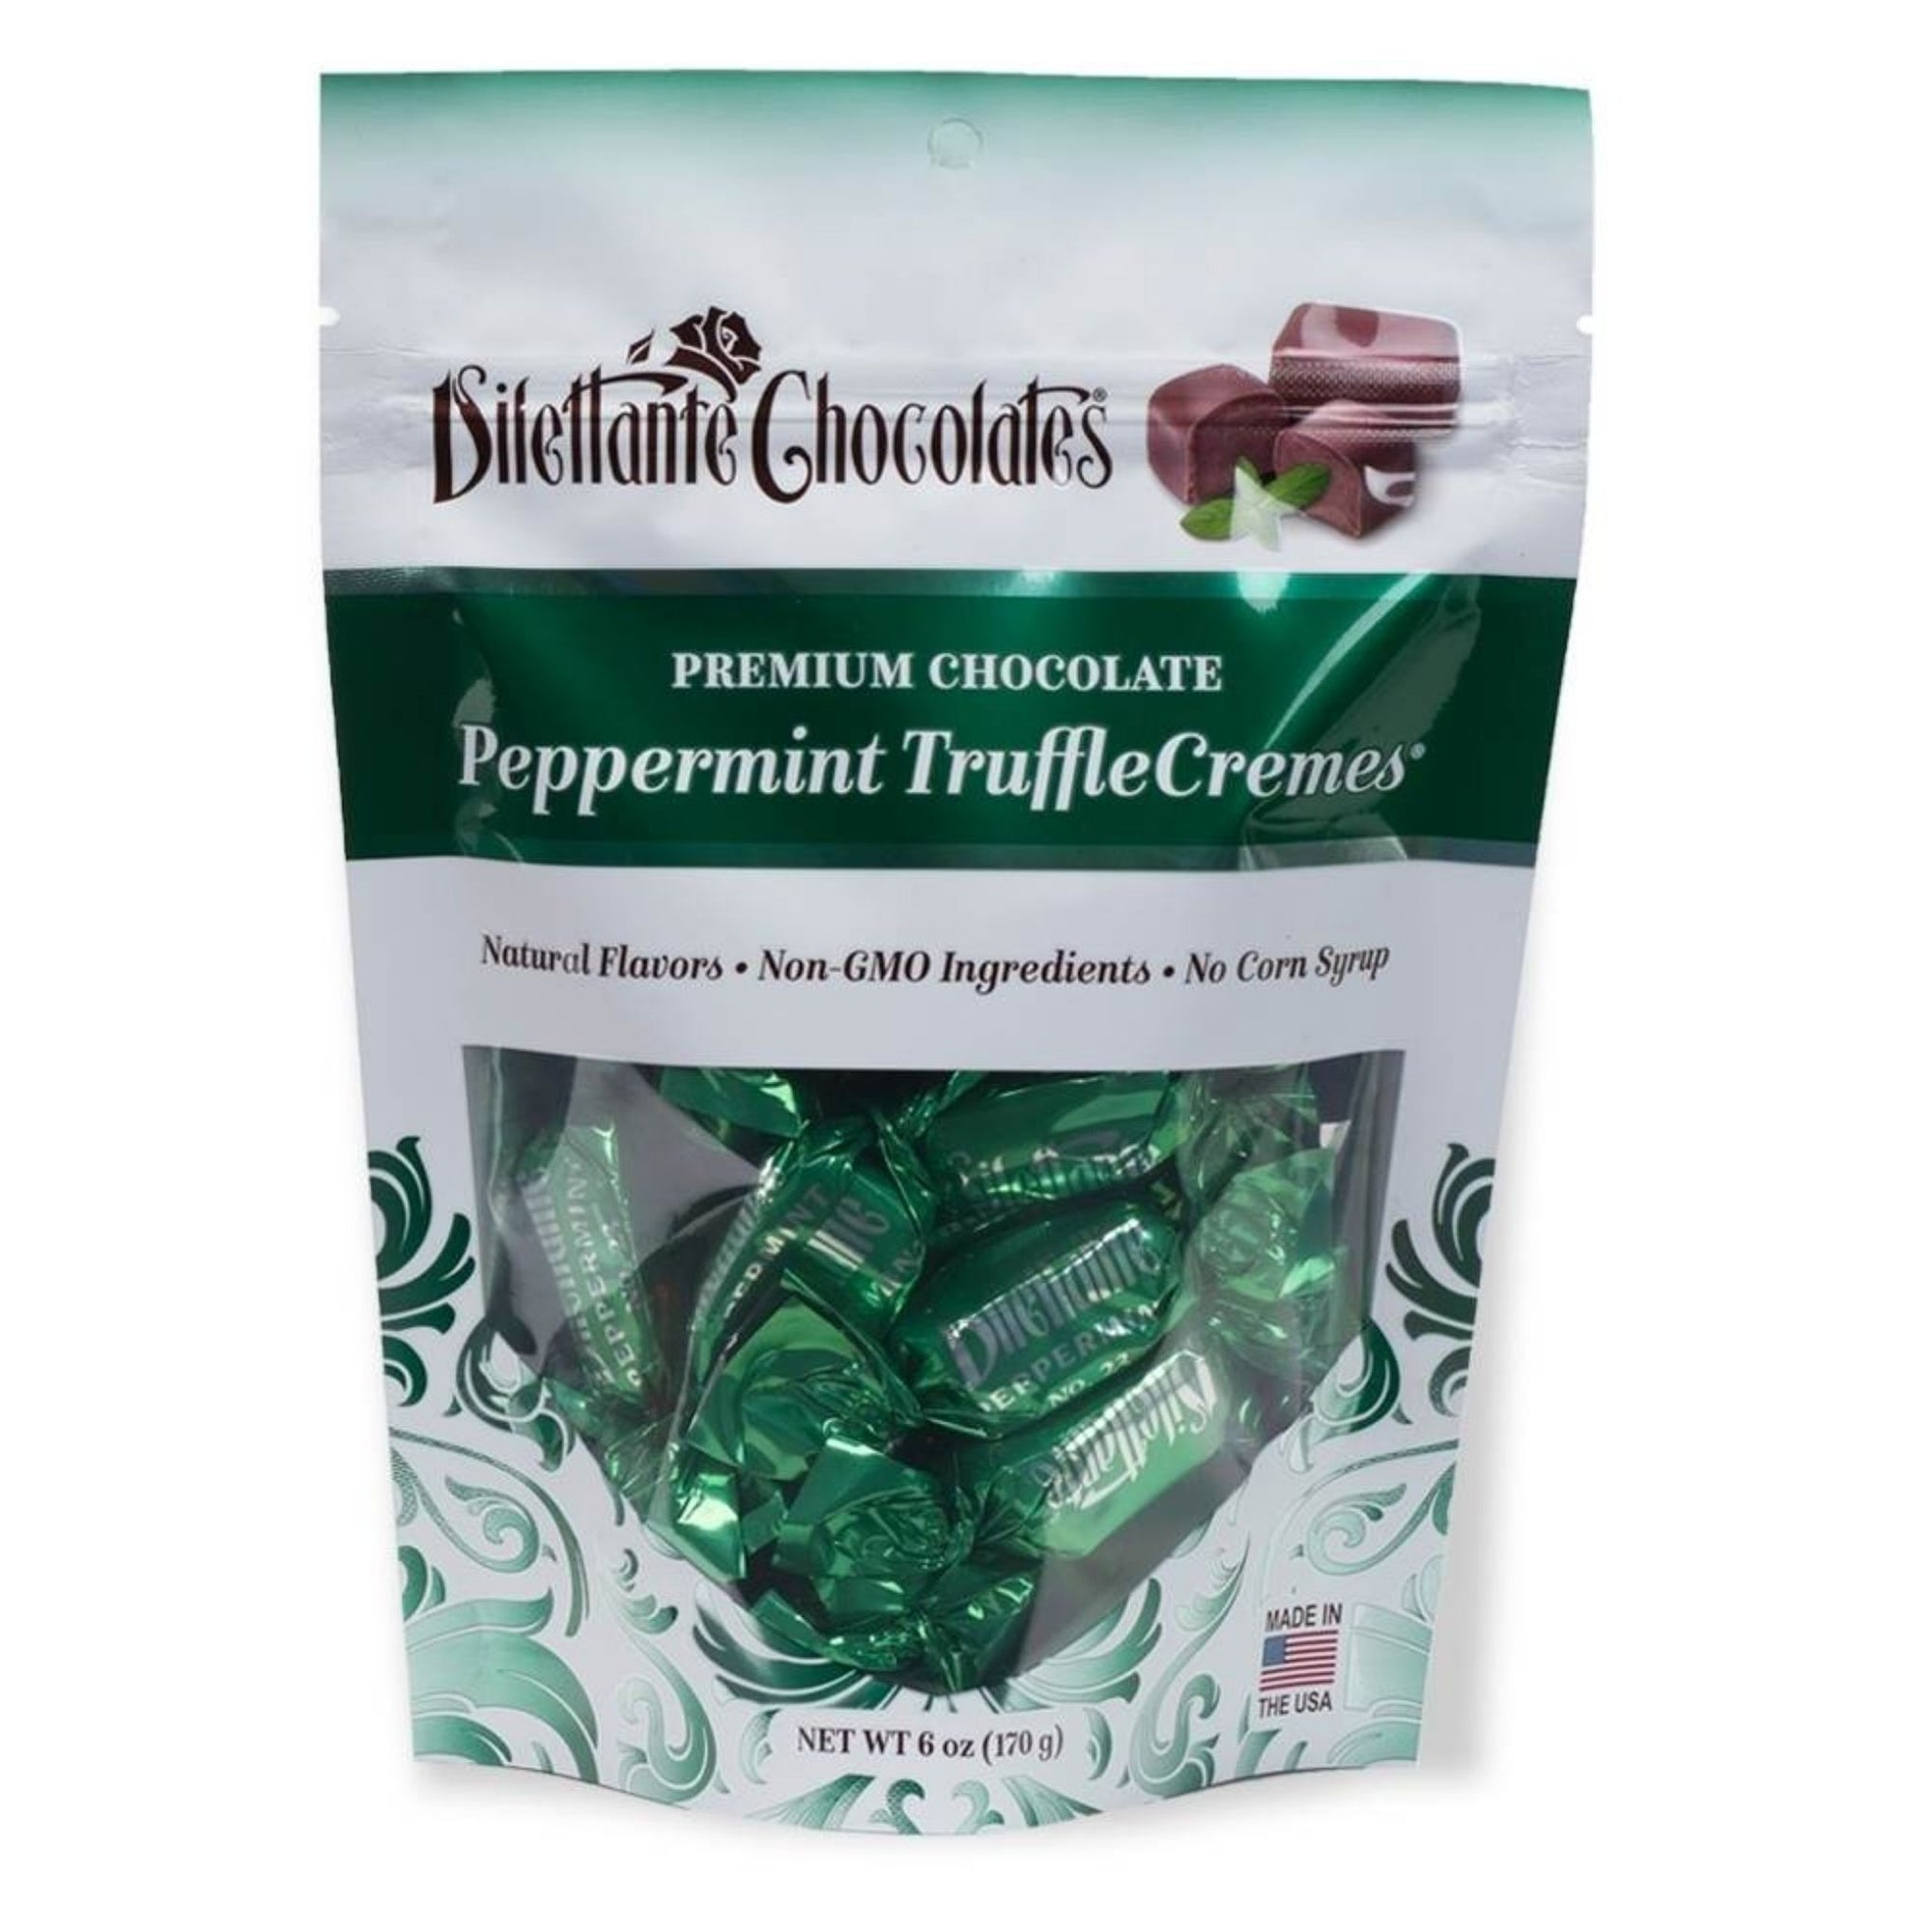 Dilettante Chocolates Premium Chocolate Peppermint TruffleCremes Featuring Natural Flavors, Non-GMO Ingredients, and 0 Corn Syrup